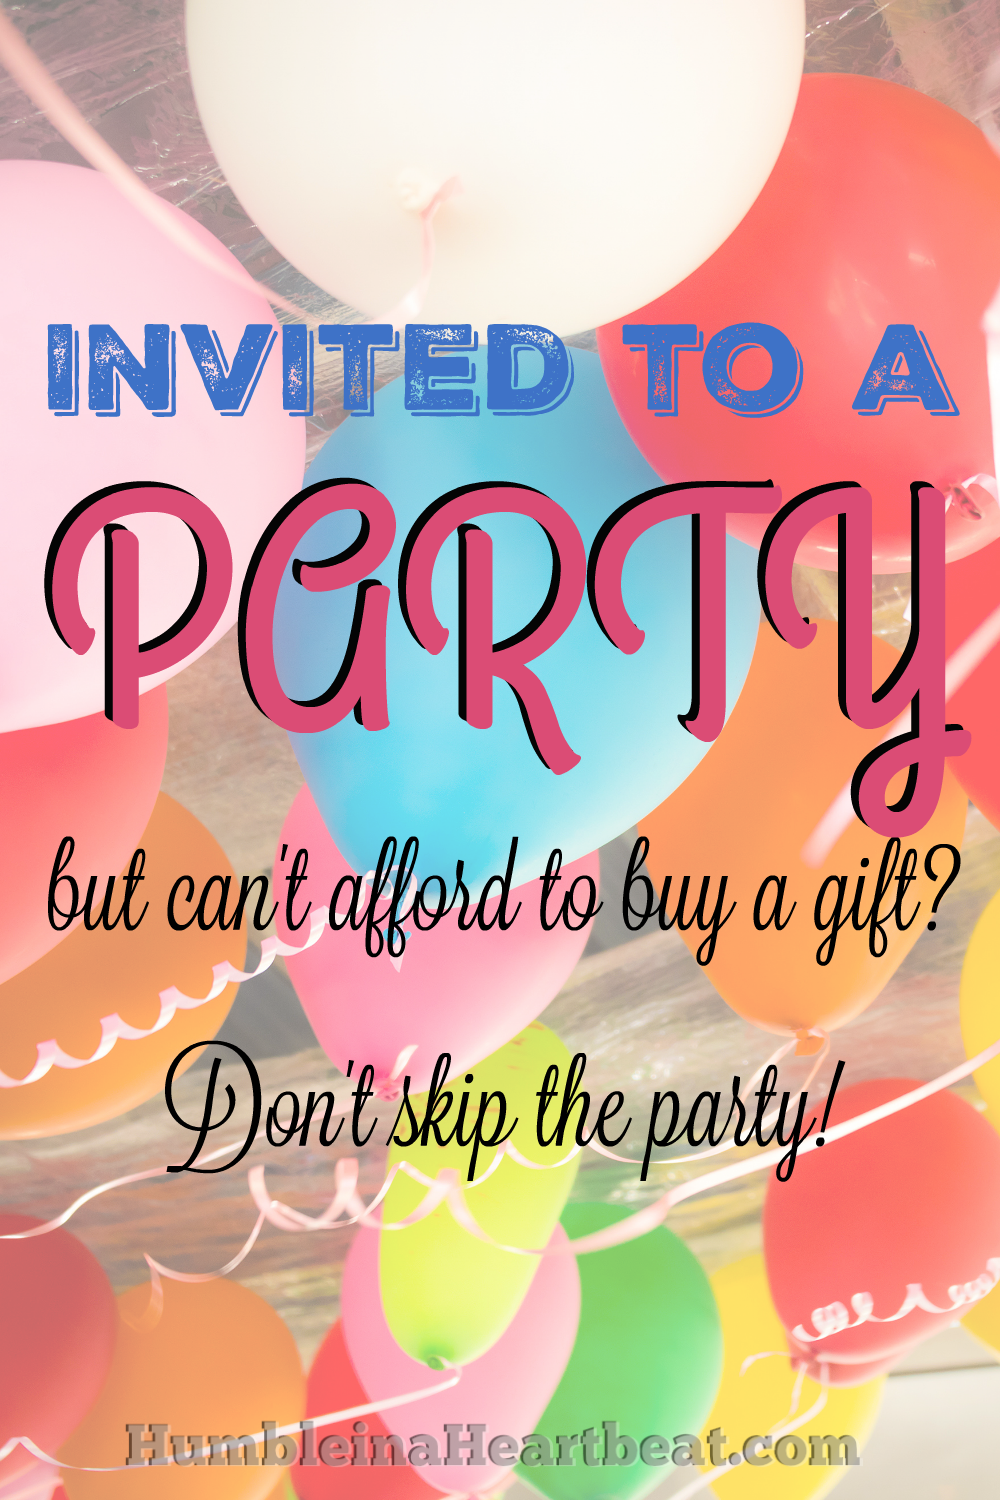 The worst thing you can do when you can't afford a gift for a party is to skip the party altogether! Here are several alternative ideas that are socially acceptable.